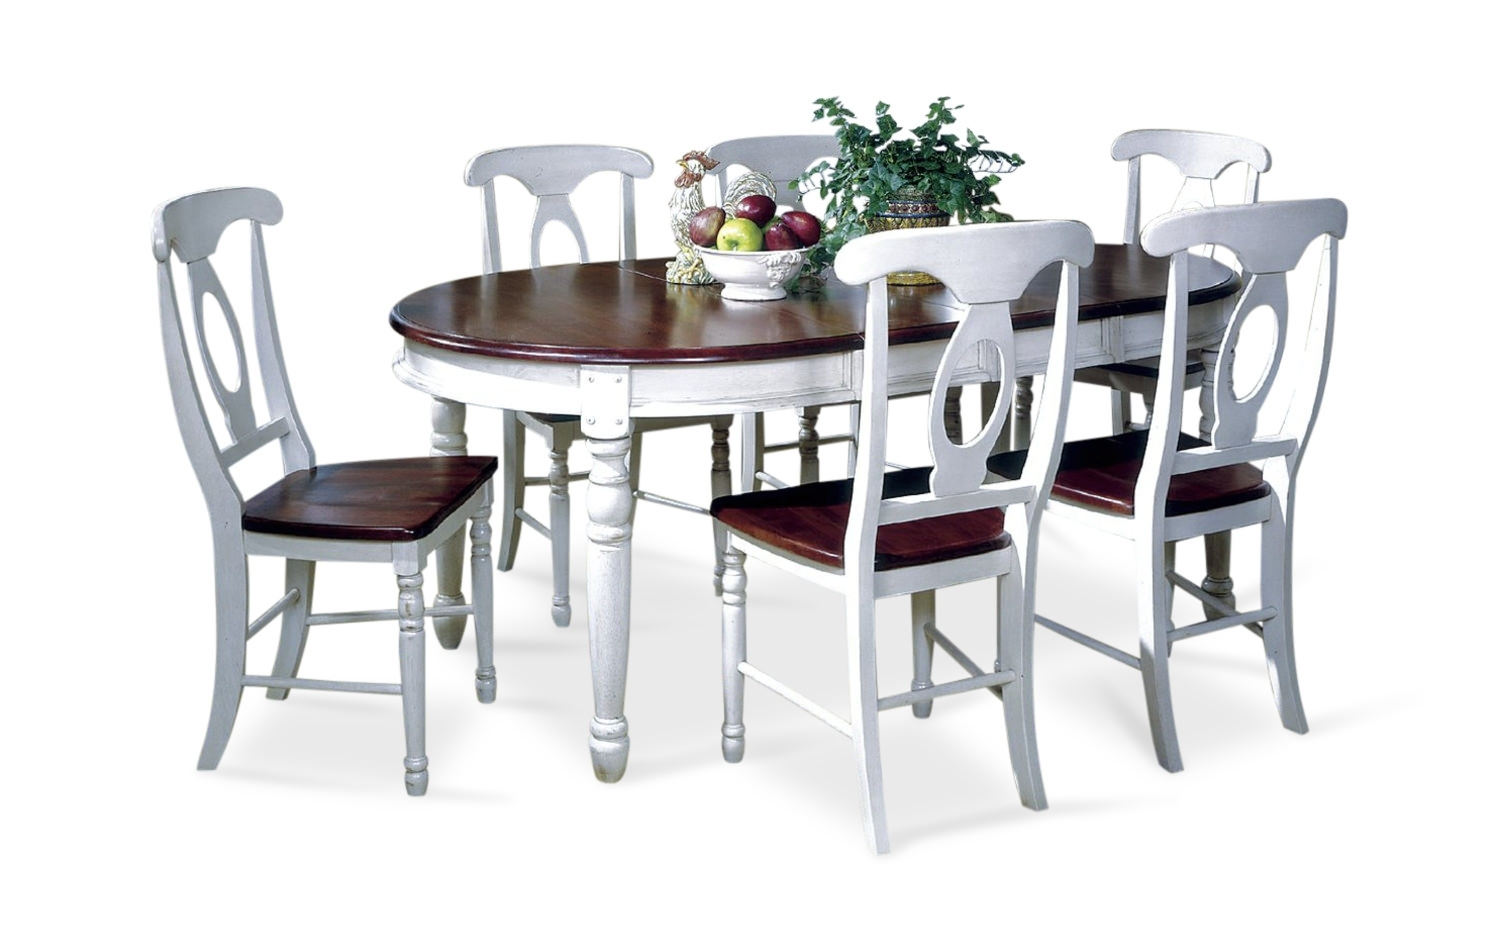 Chapleau Ii Side Chairs For Widely Used Dining Sets – Kitchen & Dining Room Sets – Hom Furniture (#8 of 20)